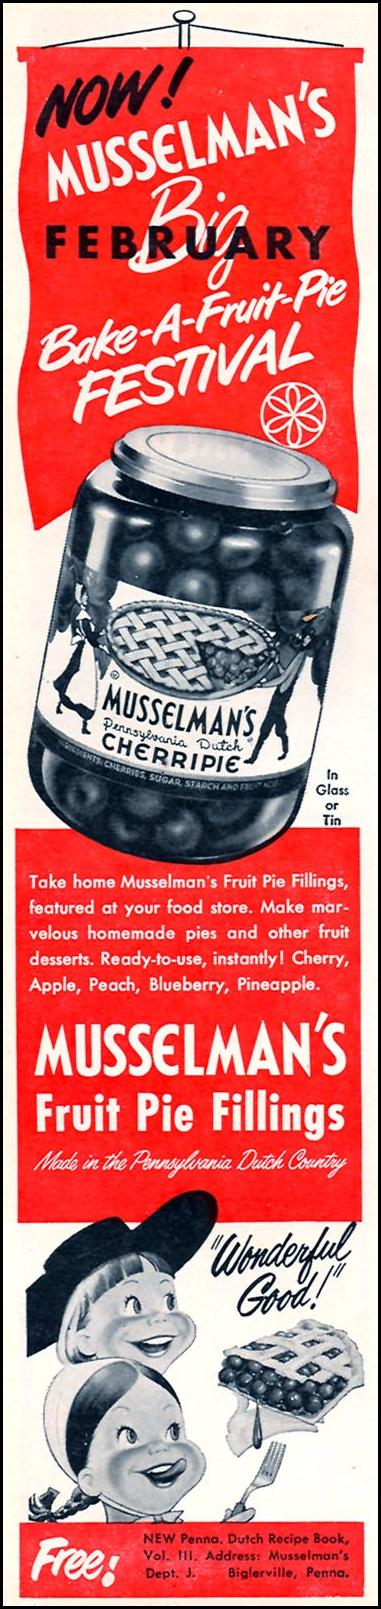 MUSSELMAN'S FRUIT PIE FILLINGS FAMILY CIRCLE 02/01/1956 p. 80